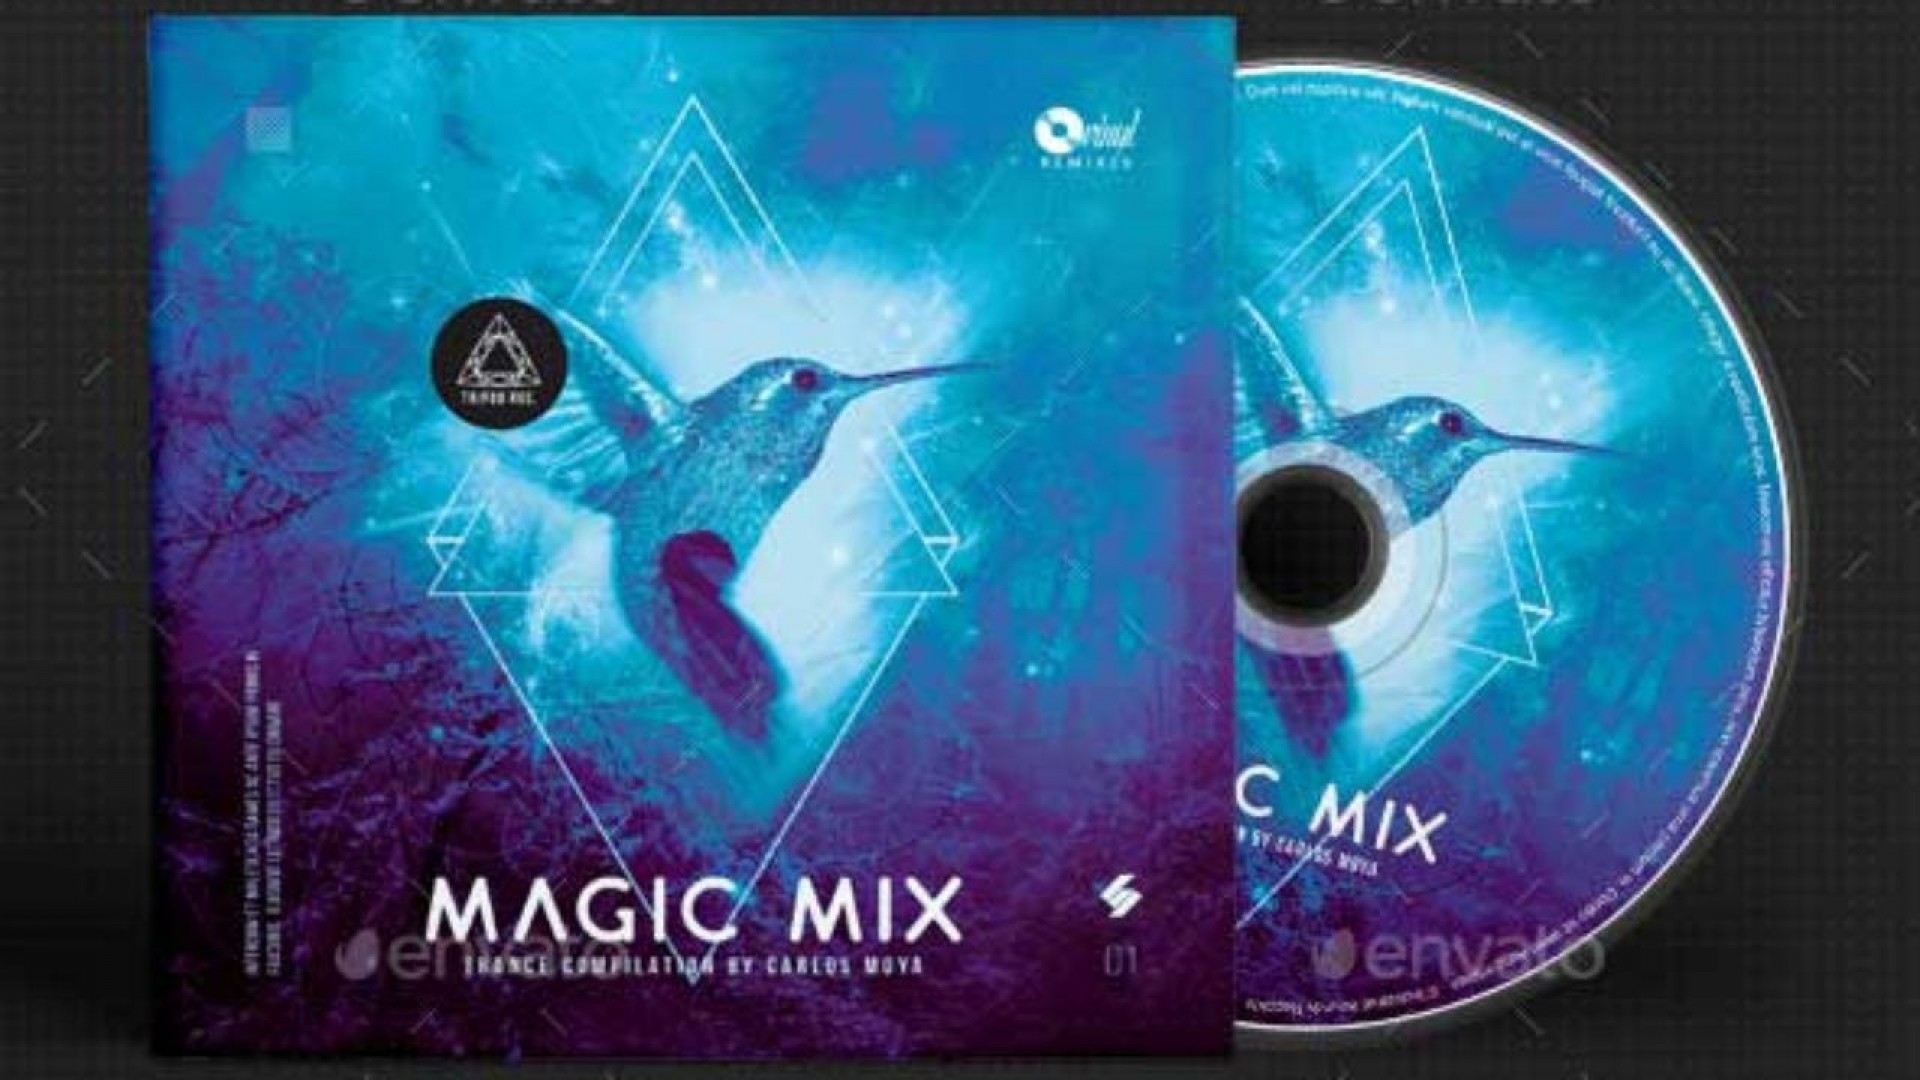 009 Outstanding Free Cd Cover Design Template Photoshop High Def  Label Psd Download1920